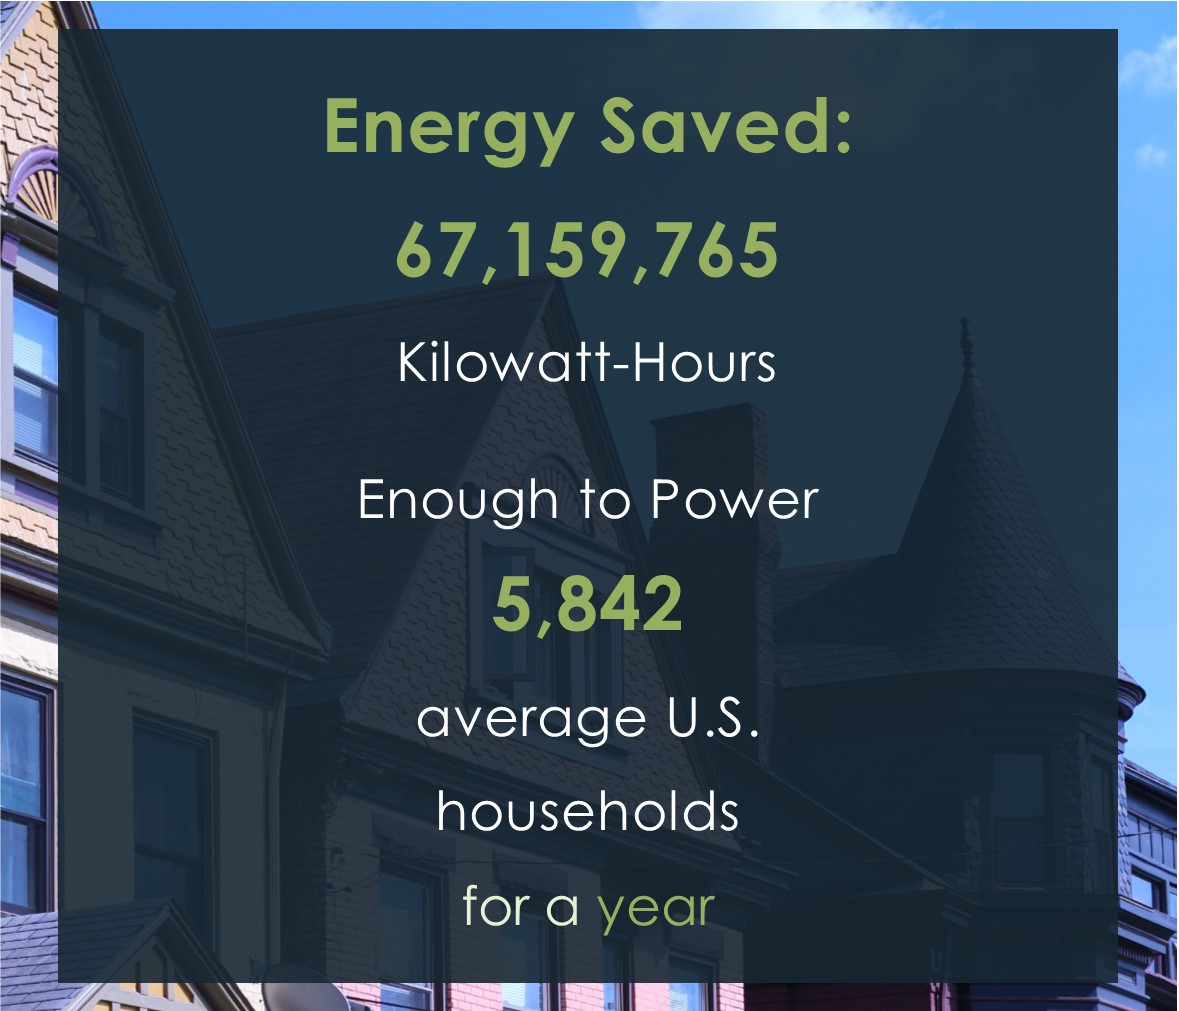 Energy Saved